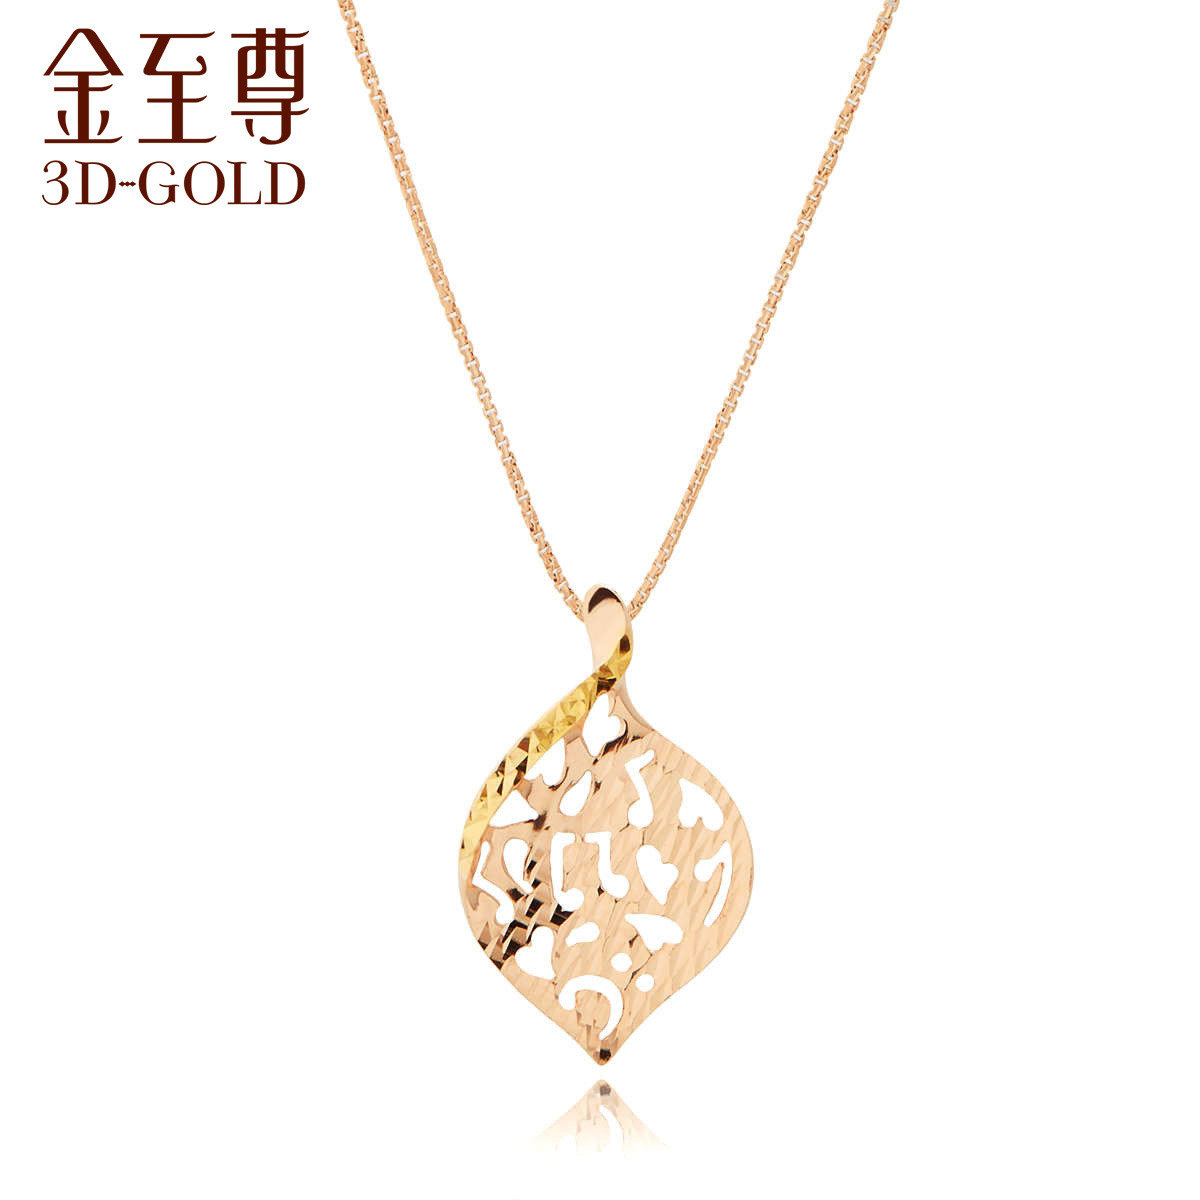 18K Bi-Color Gold Pendant